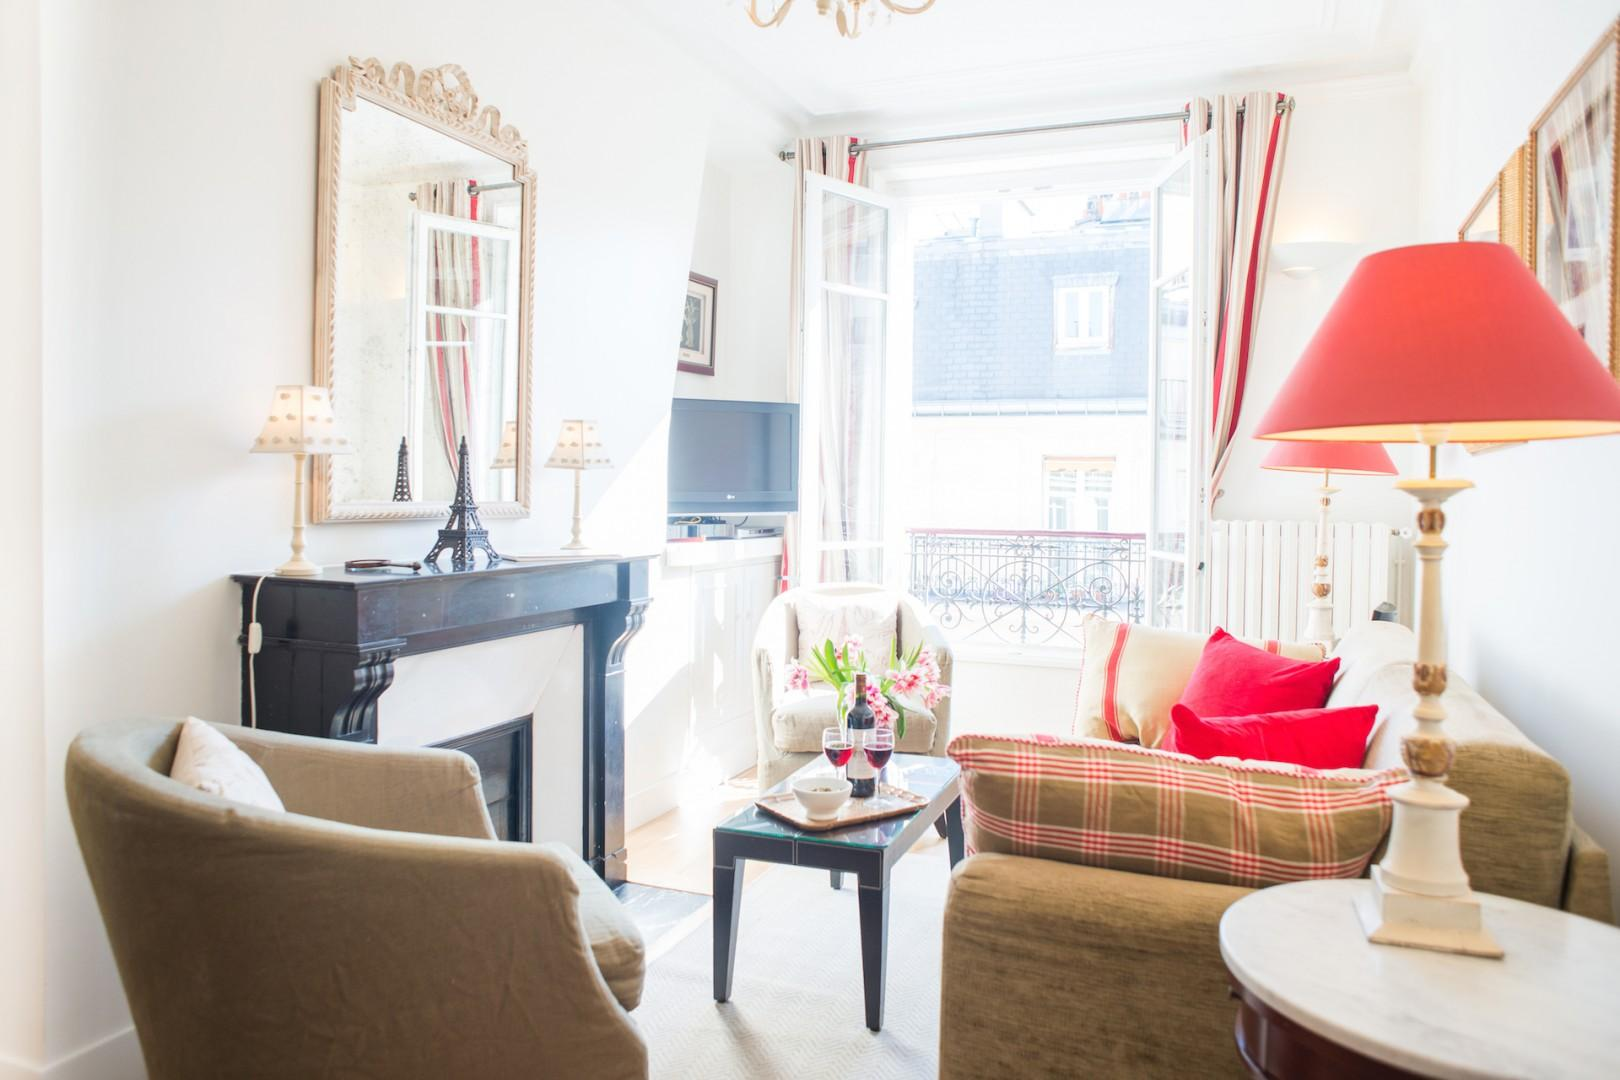 Large French windows provide, sunlight, fresh air and views.